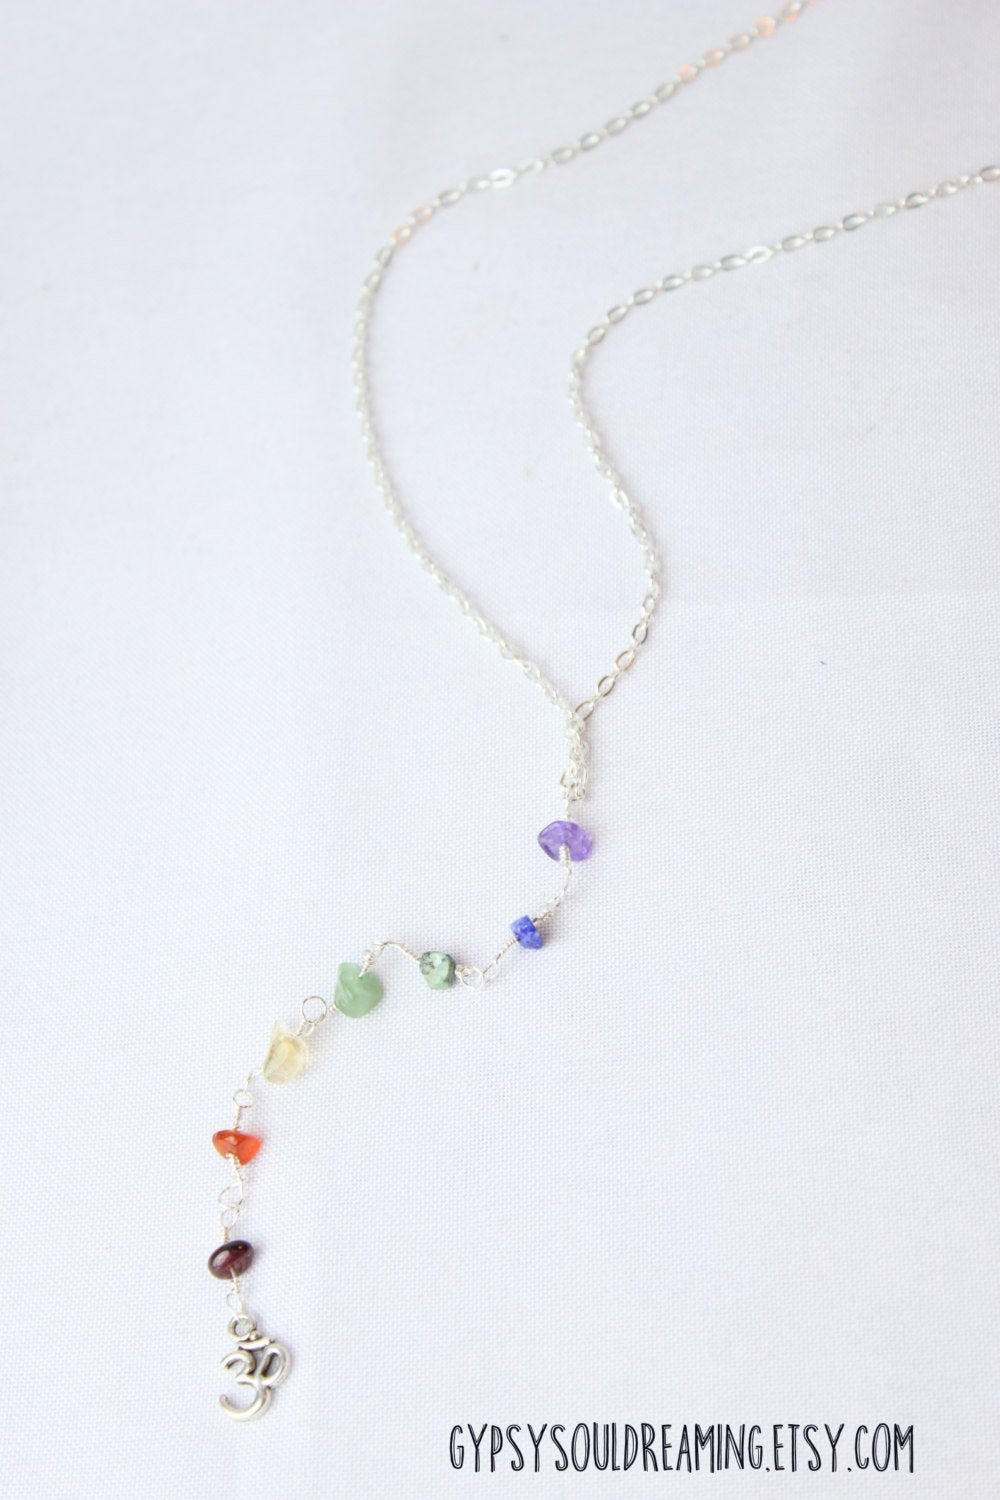 Long Dangle Chakra Necklace Hand Wrapped with an Ohm Charm and Clasp Closure